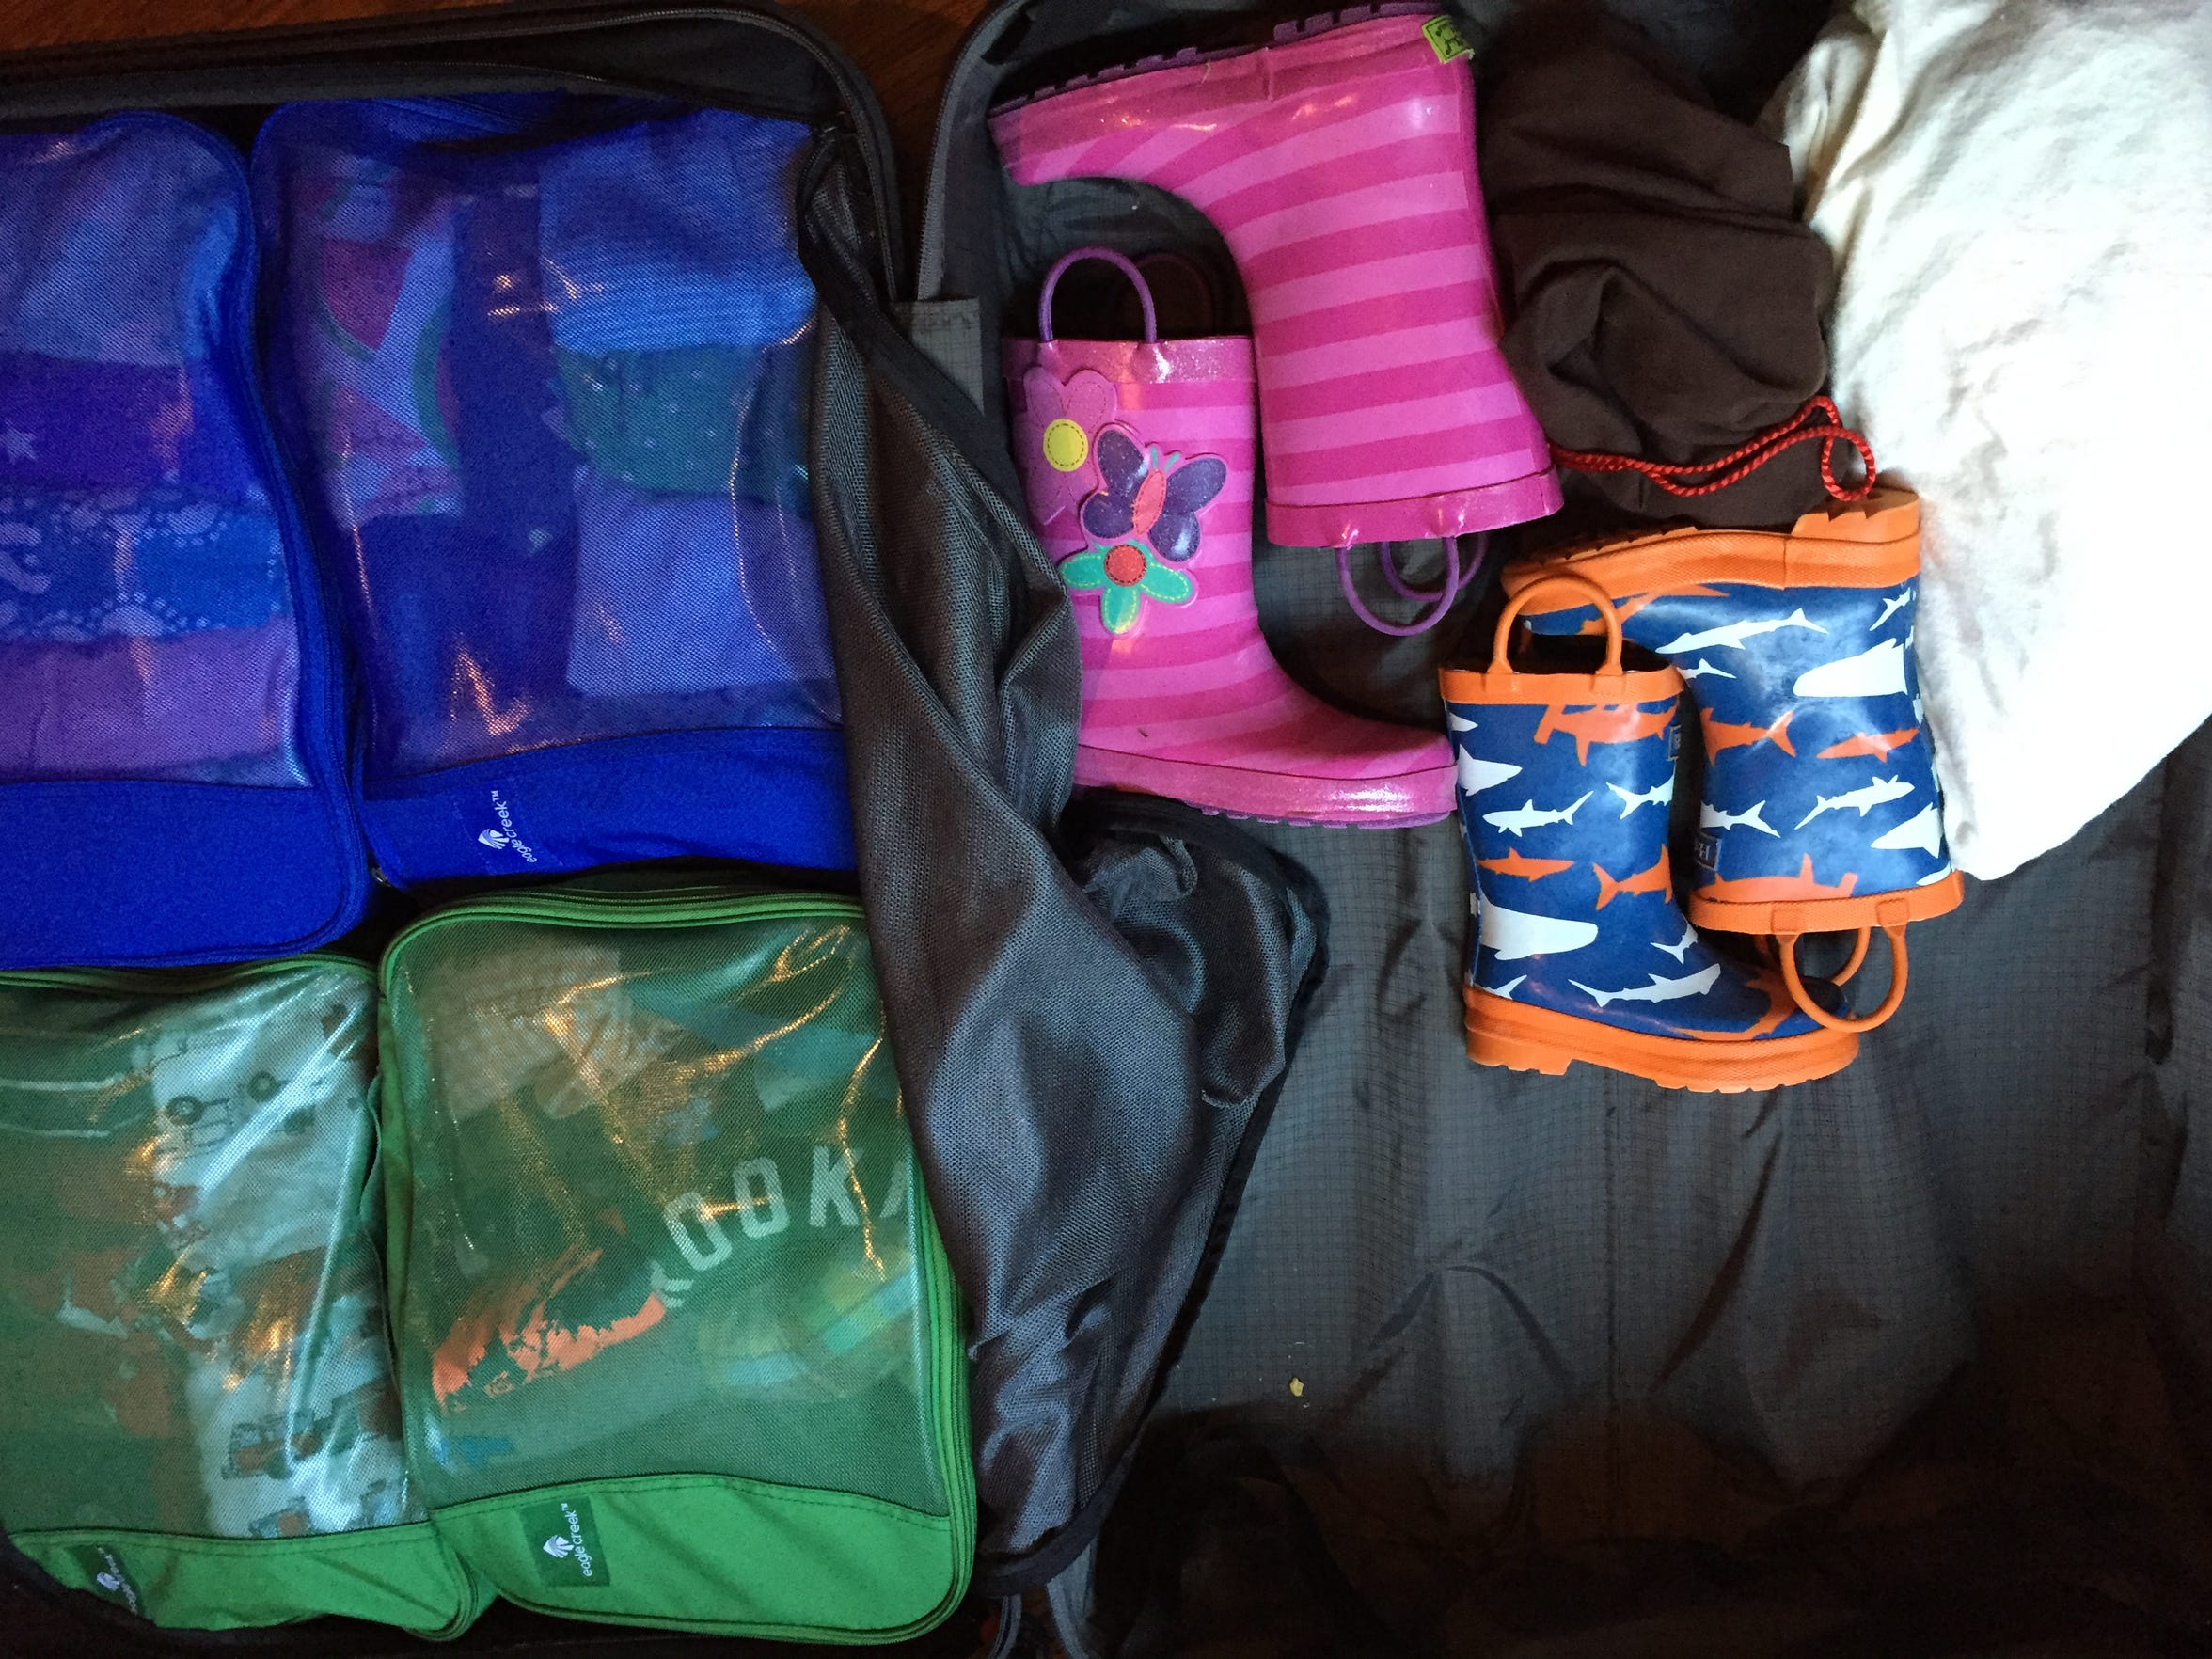 The family allowed themselves only two suitcases on